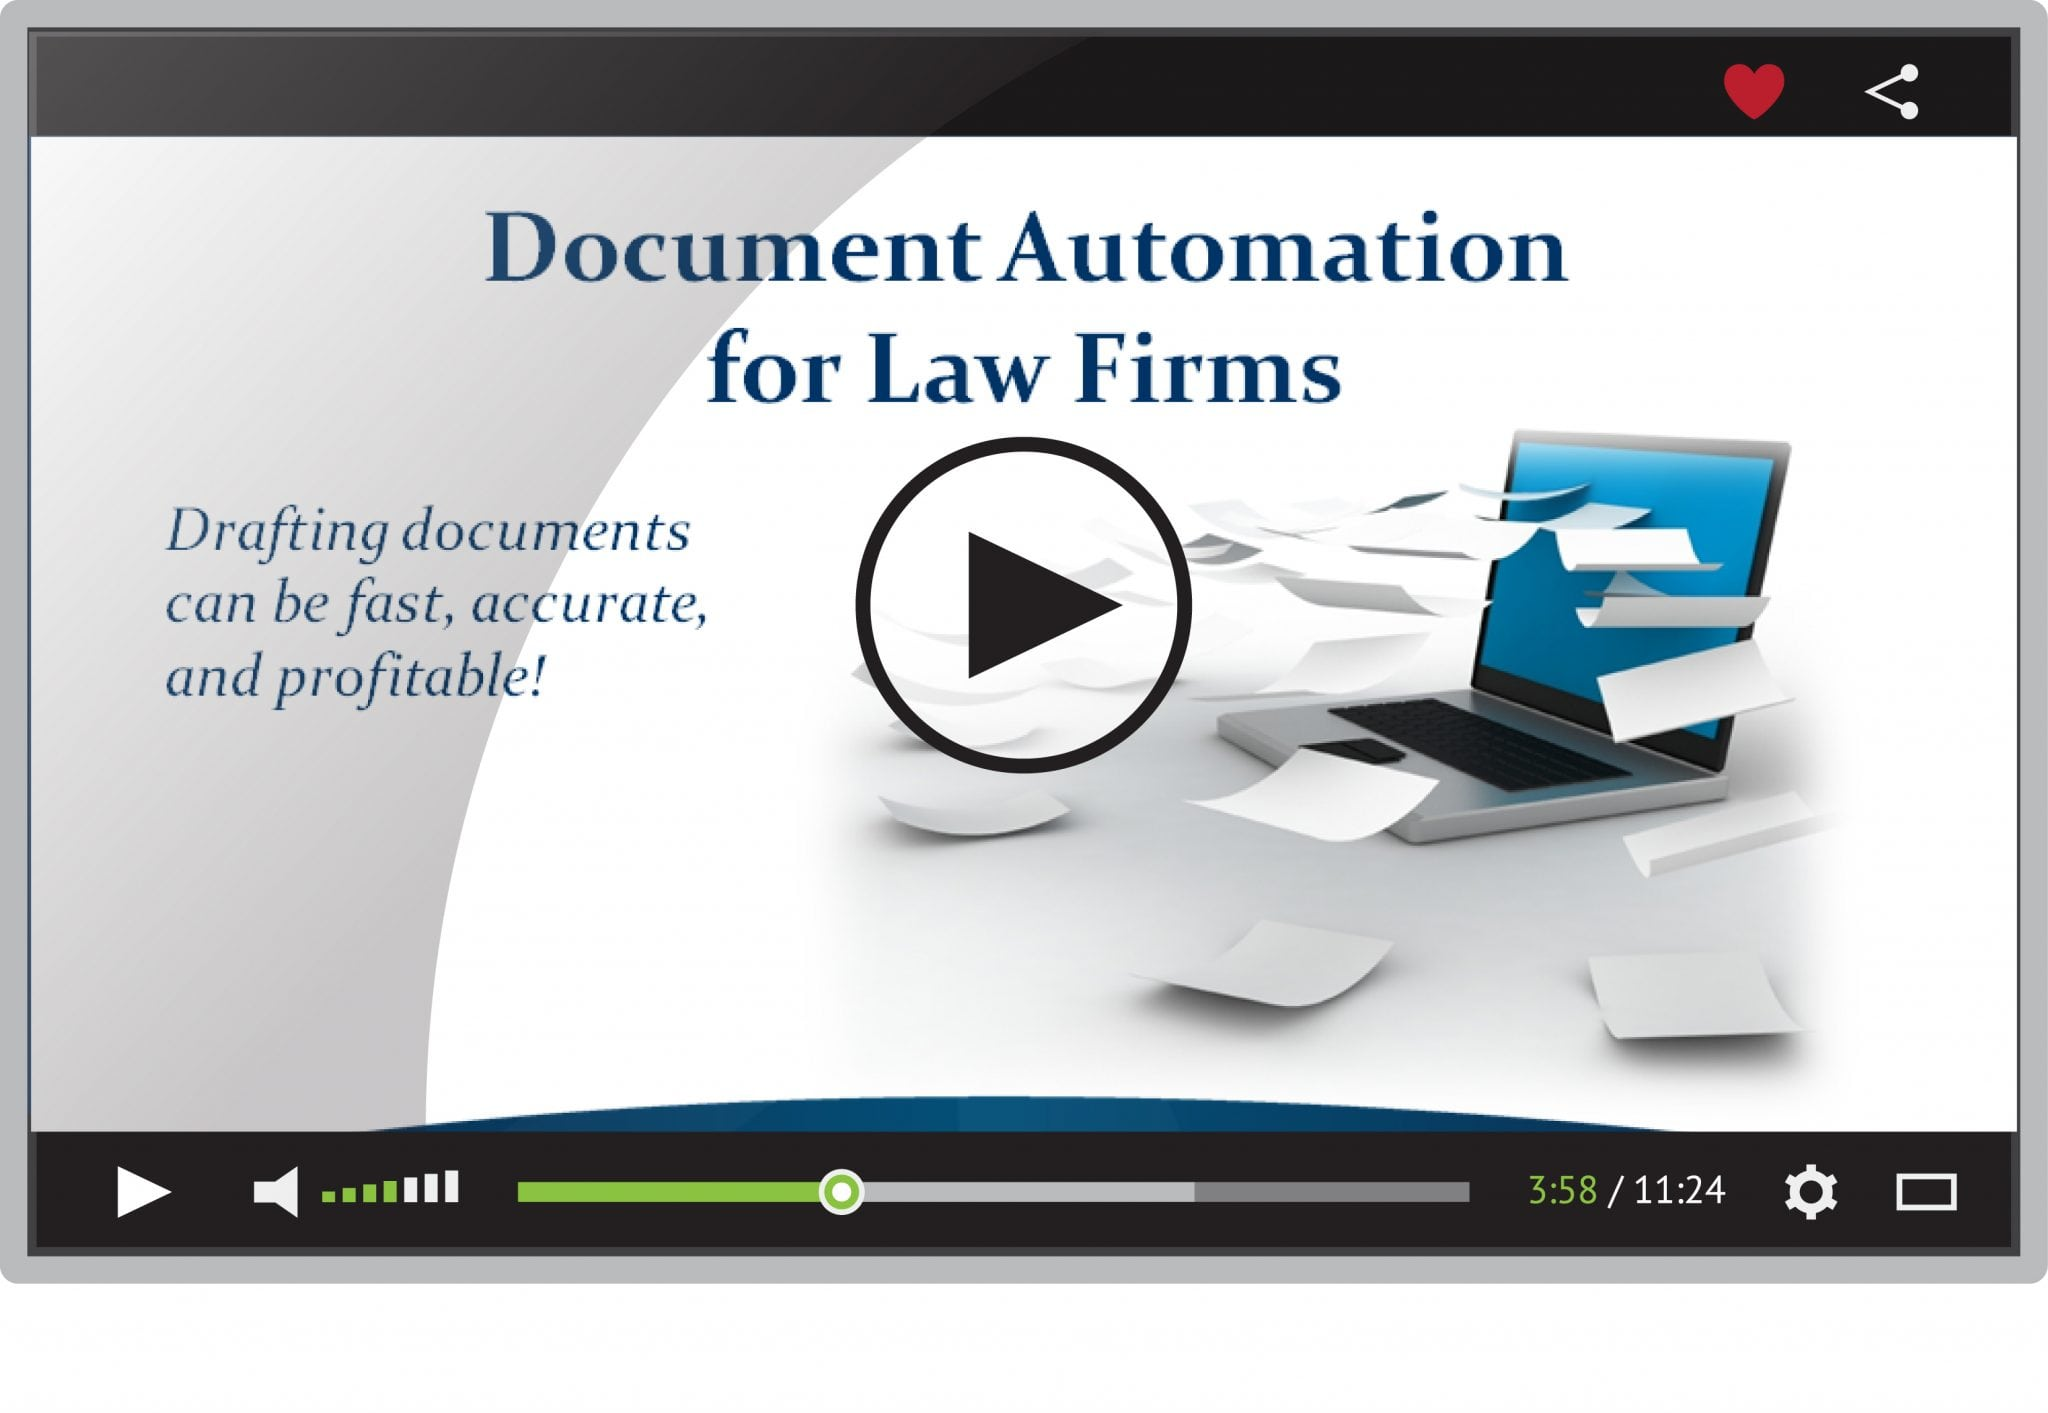 Document Automation in Law Firms